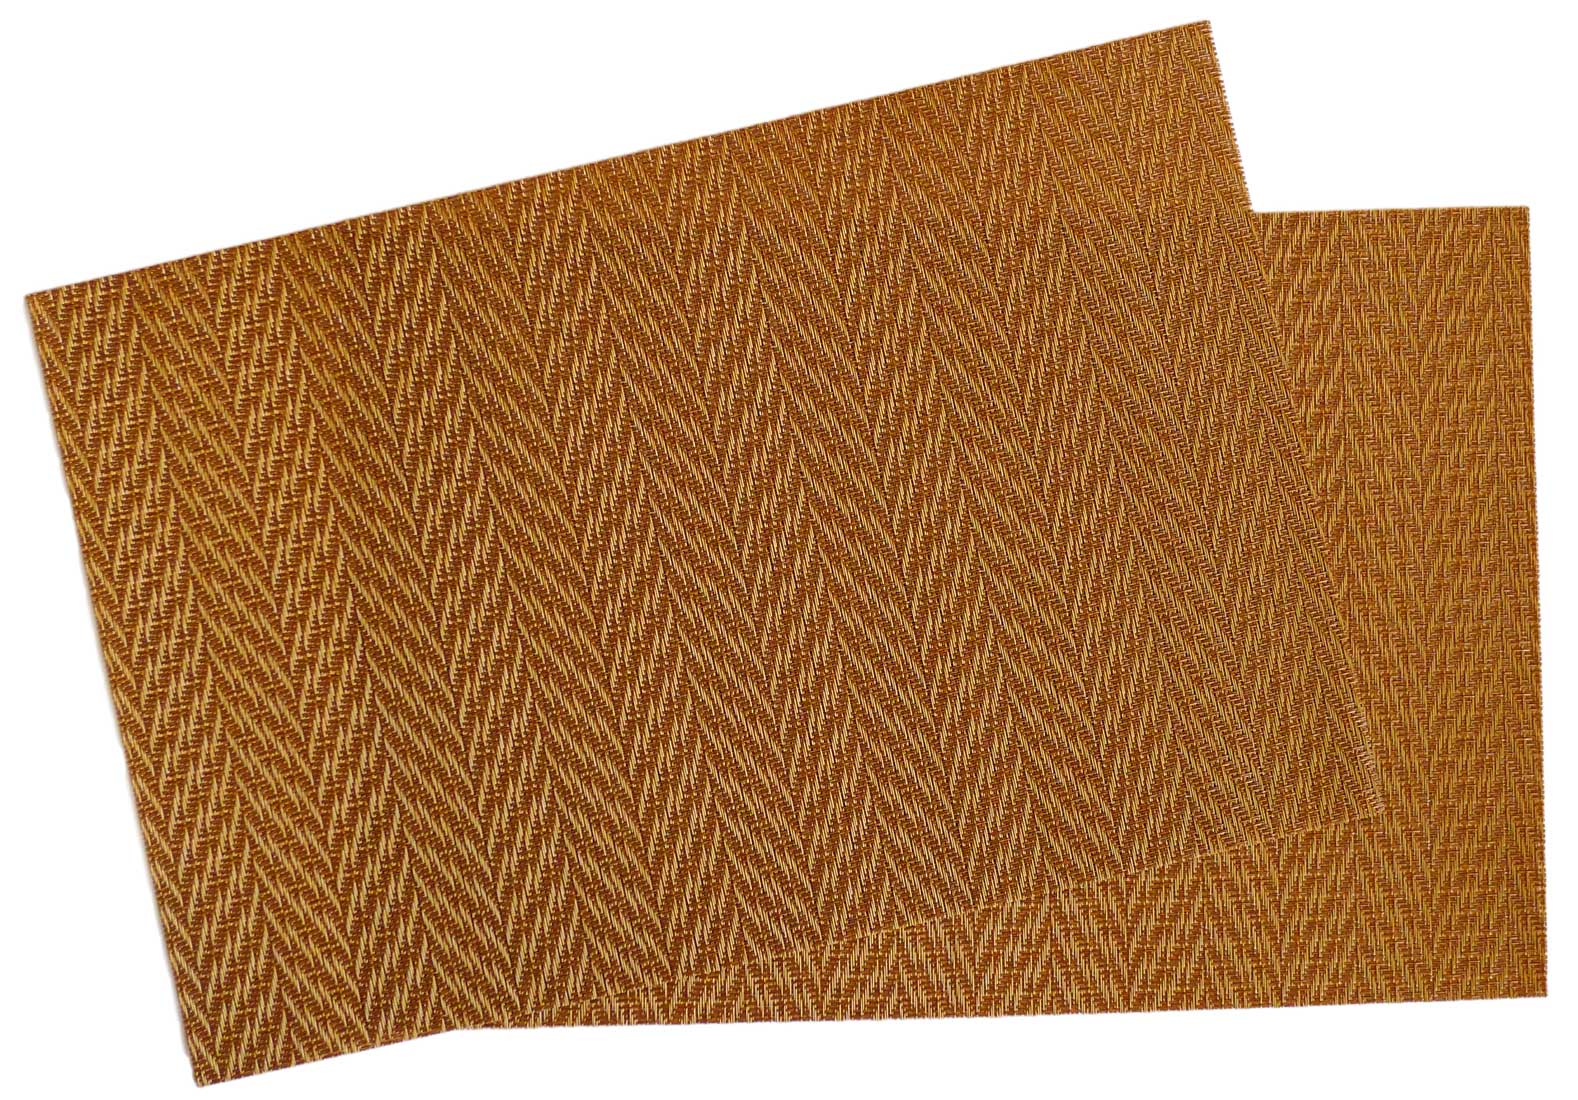 Image of Woven Vinyl Mat Gold Herringbone MAT25